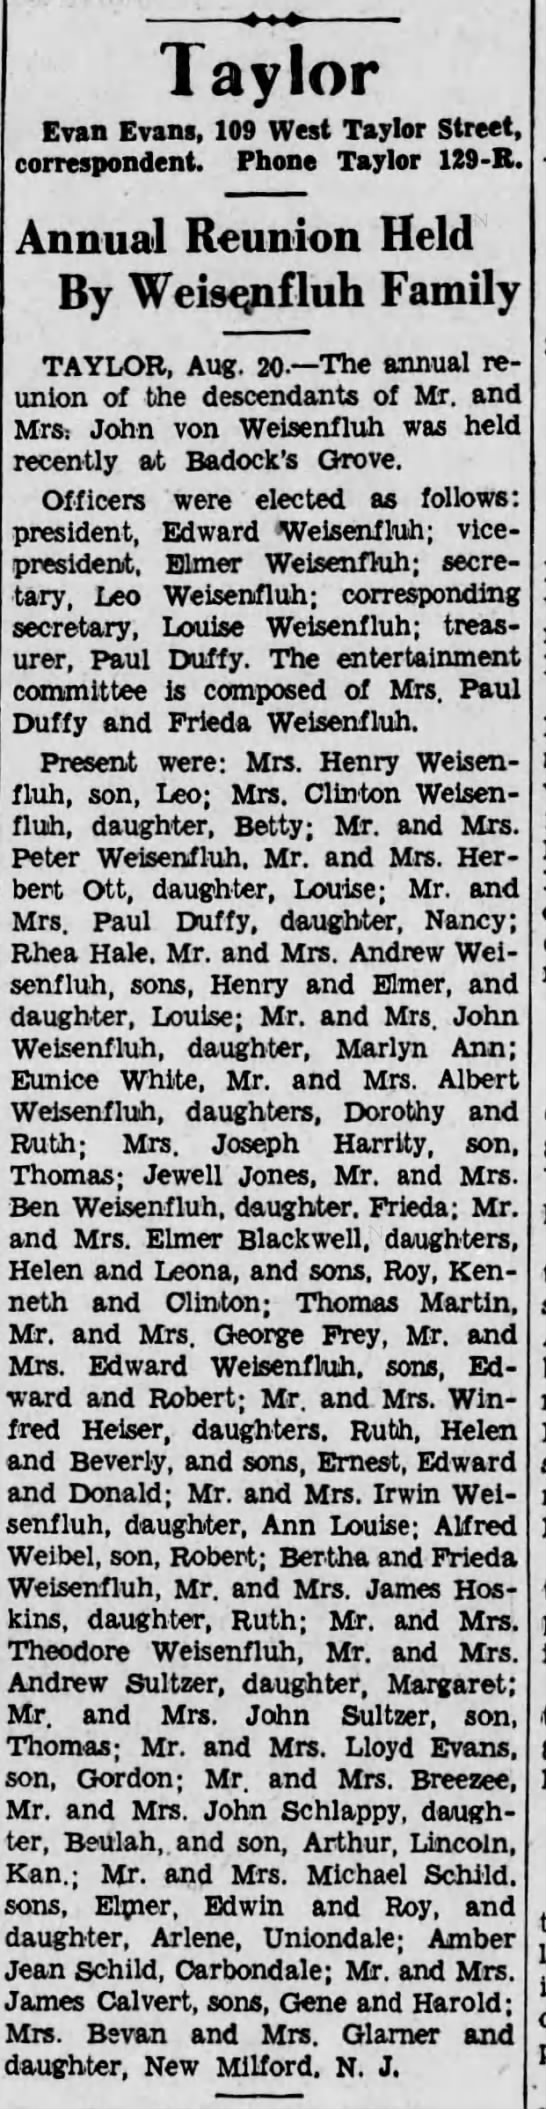 Weisenfluh reunion - The Scranton Republican, 21 Aug 1935, page 15 -